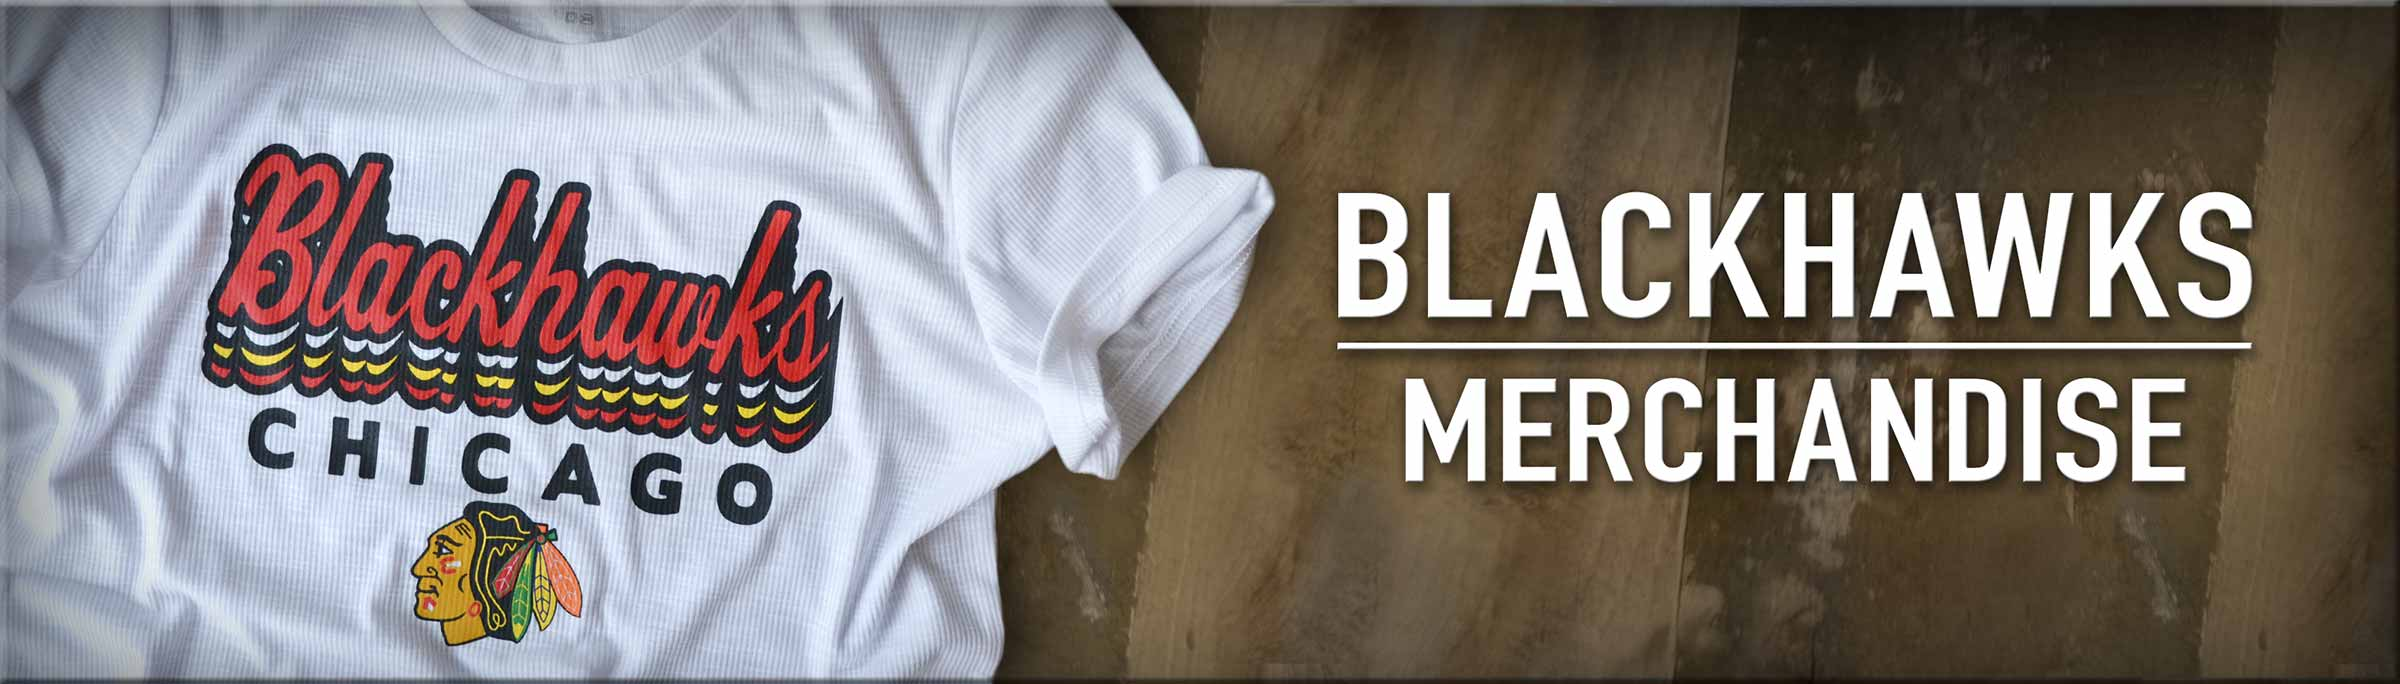 Shop Chicago Blackhawks Merchandise, including this Chicago Madison St Hockey Shirt from Bandwagon Champs